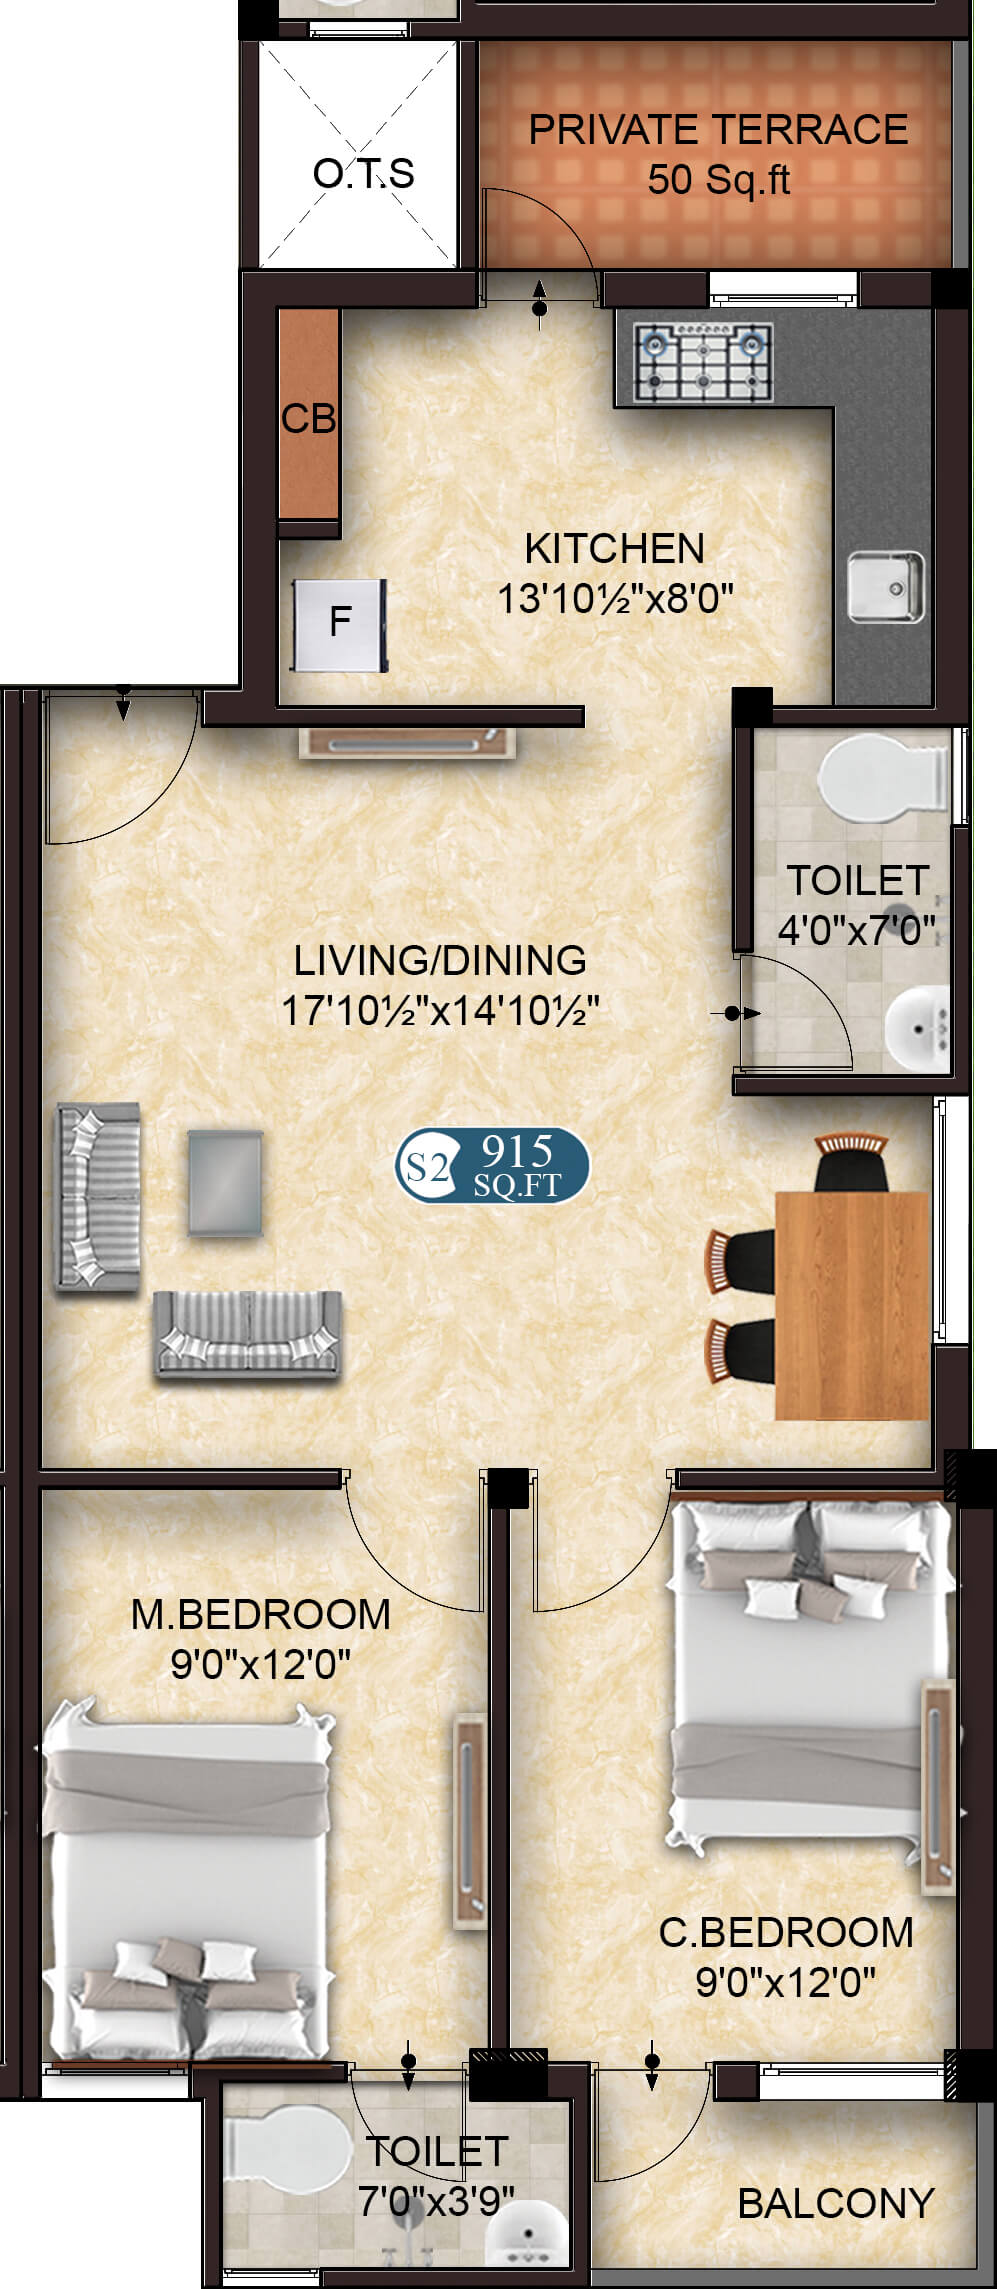 Spectra S2 2BHK 915 - Apartments/Flats Projects in Sholinganallur